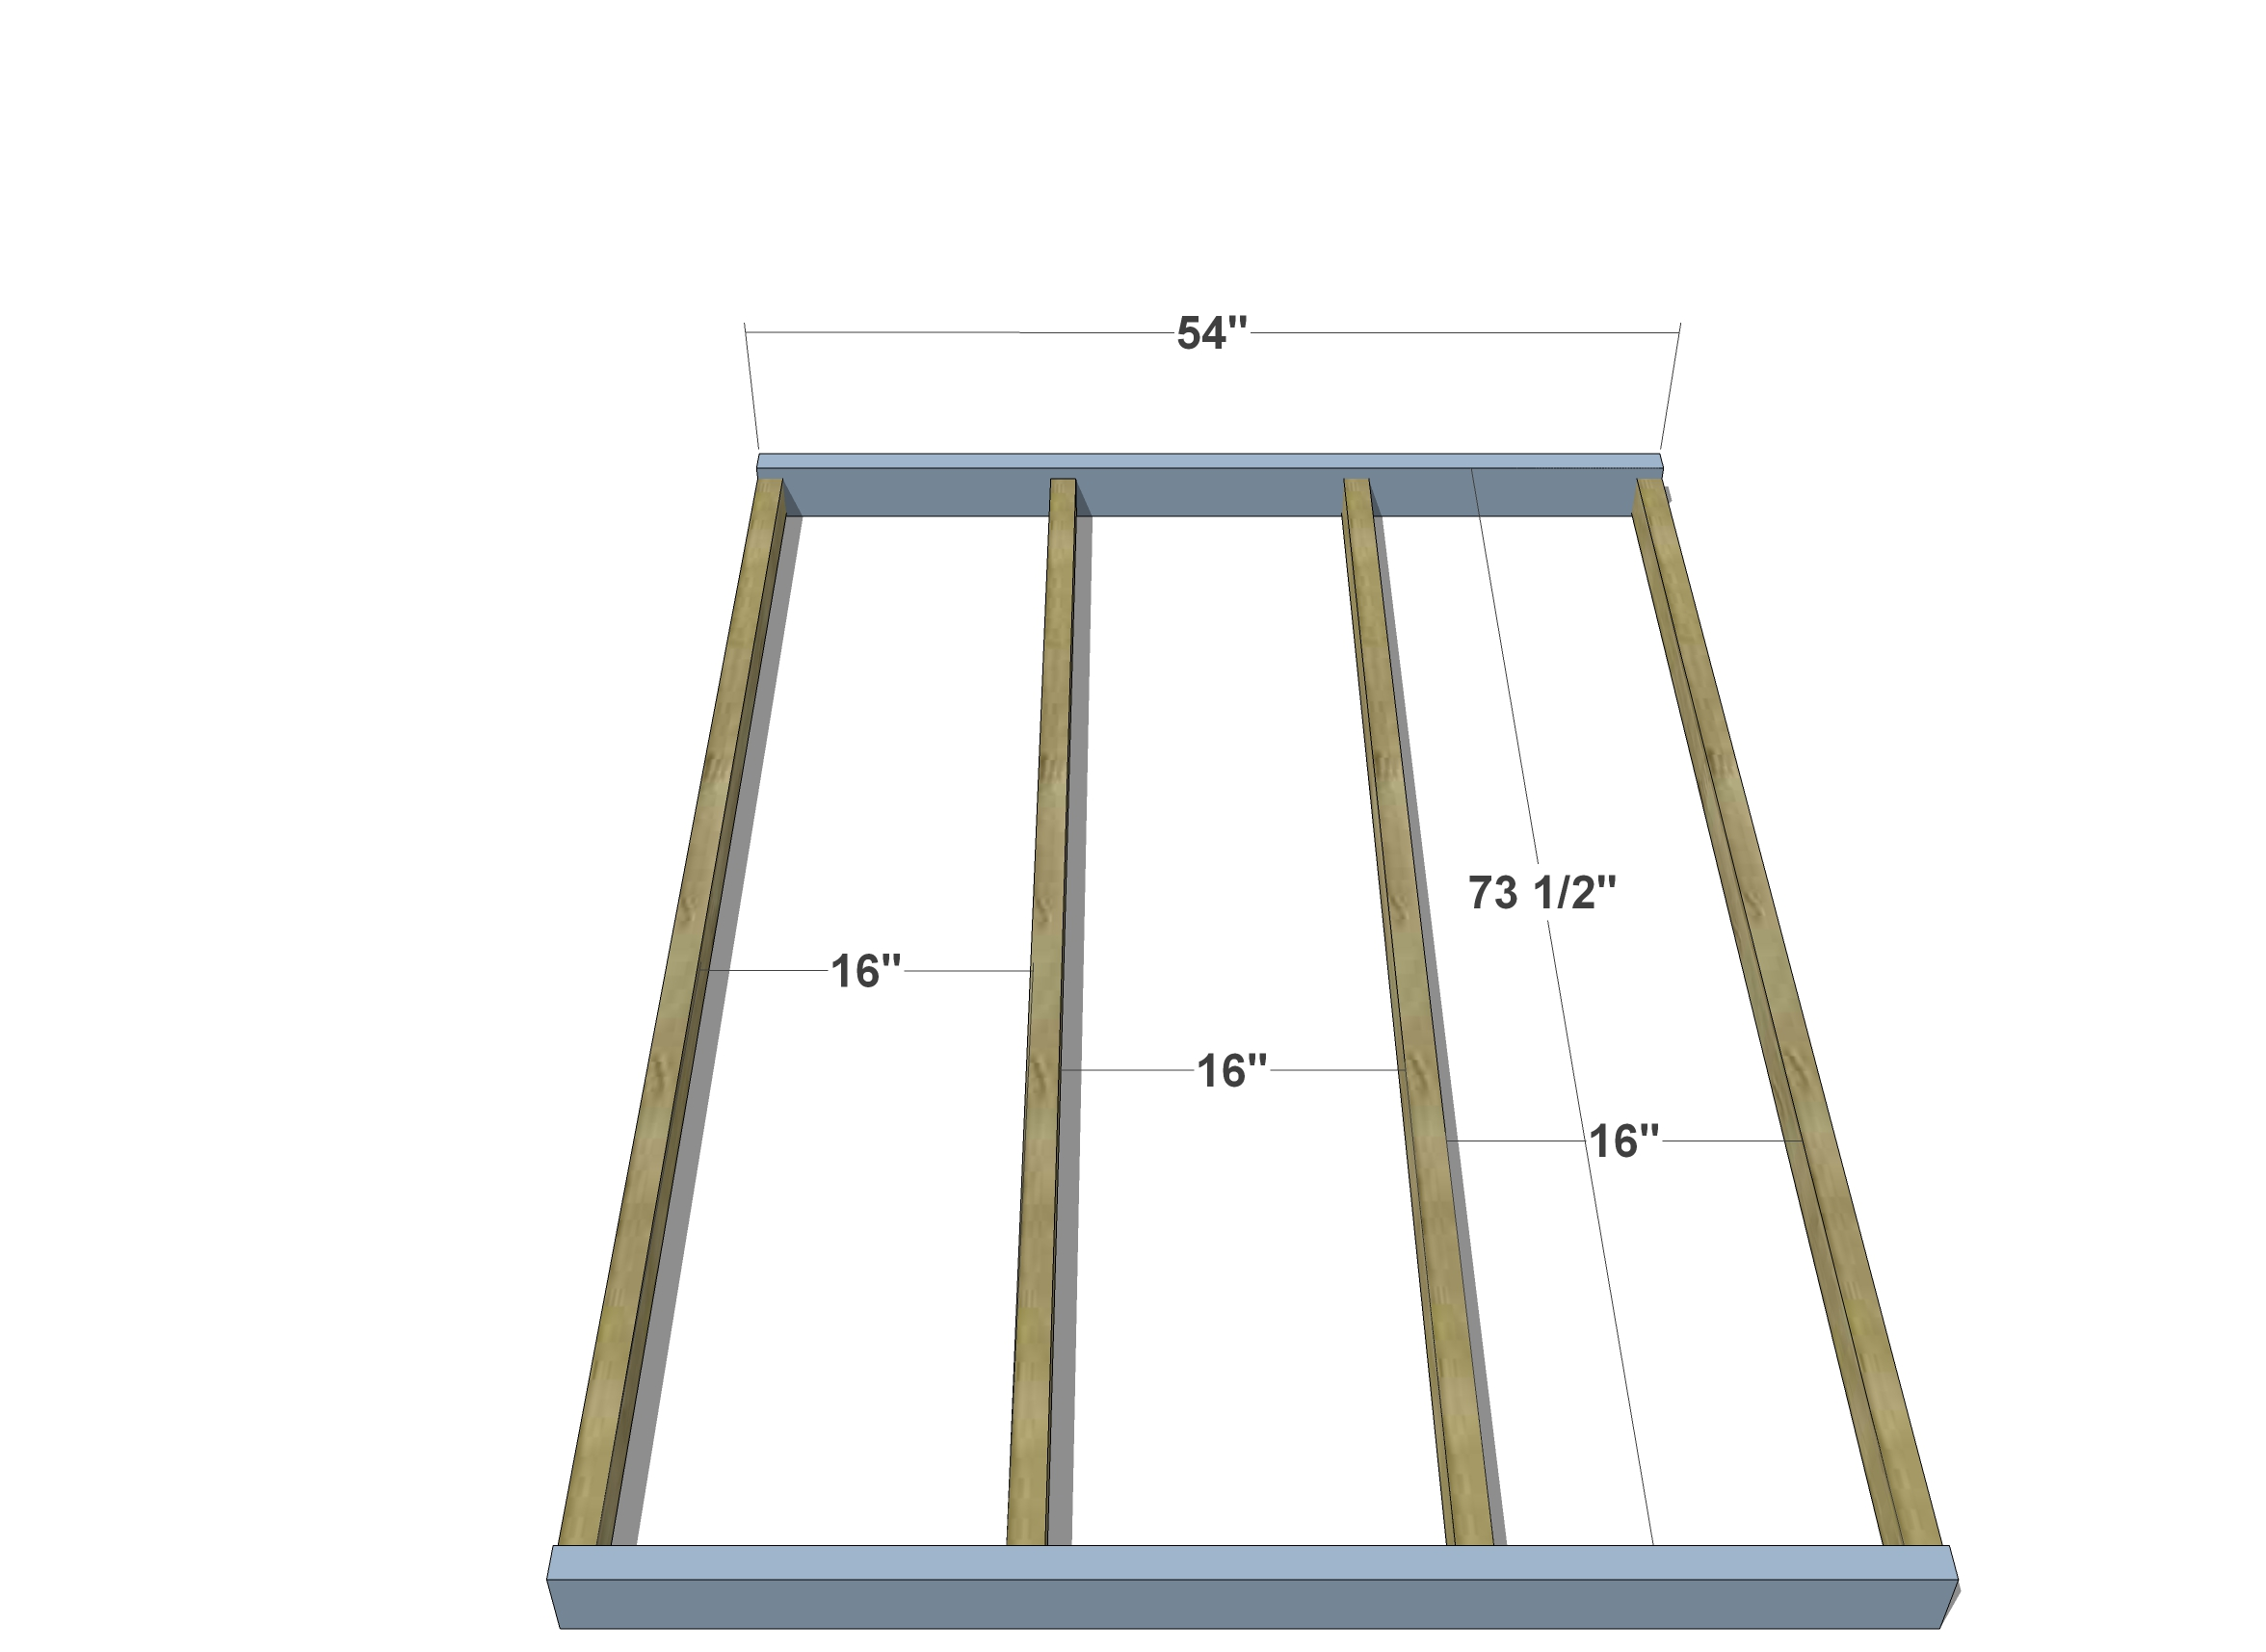 DIY Furniture Plans // How to Build a Full Sized House Bed - The ...